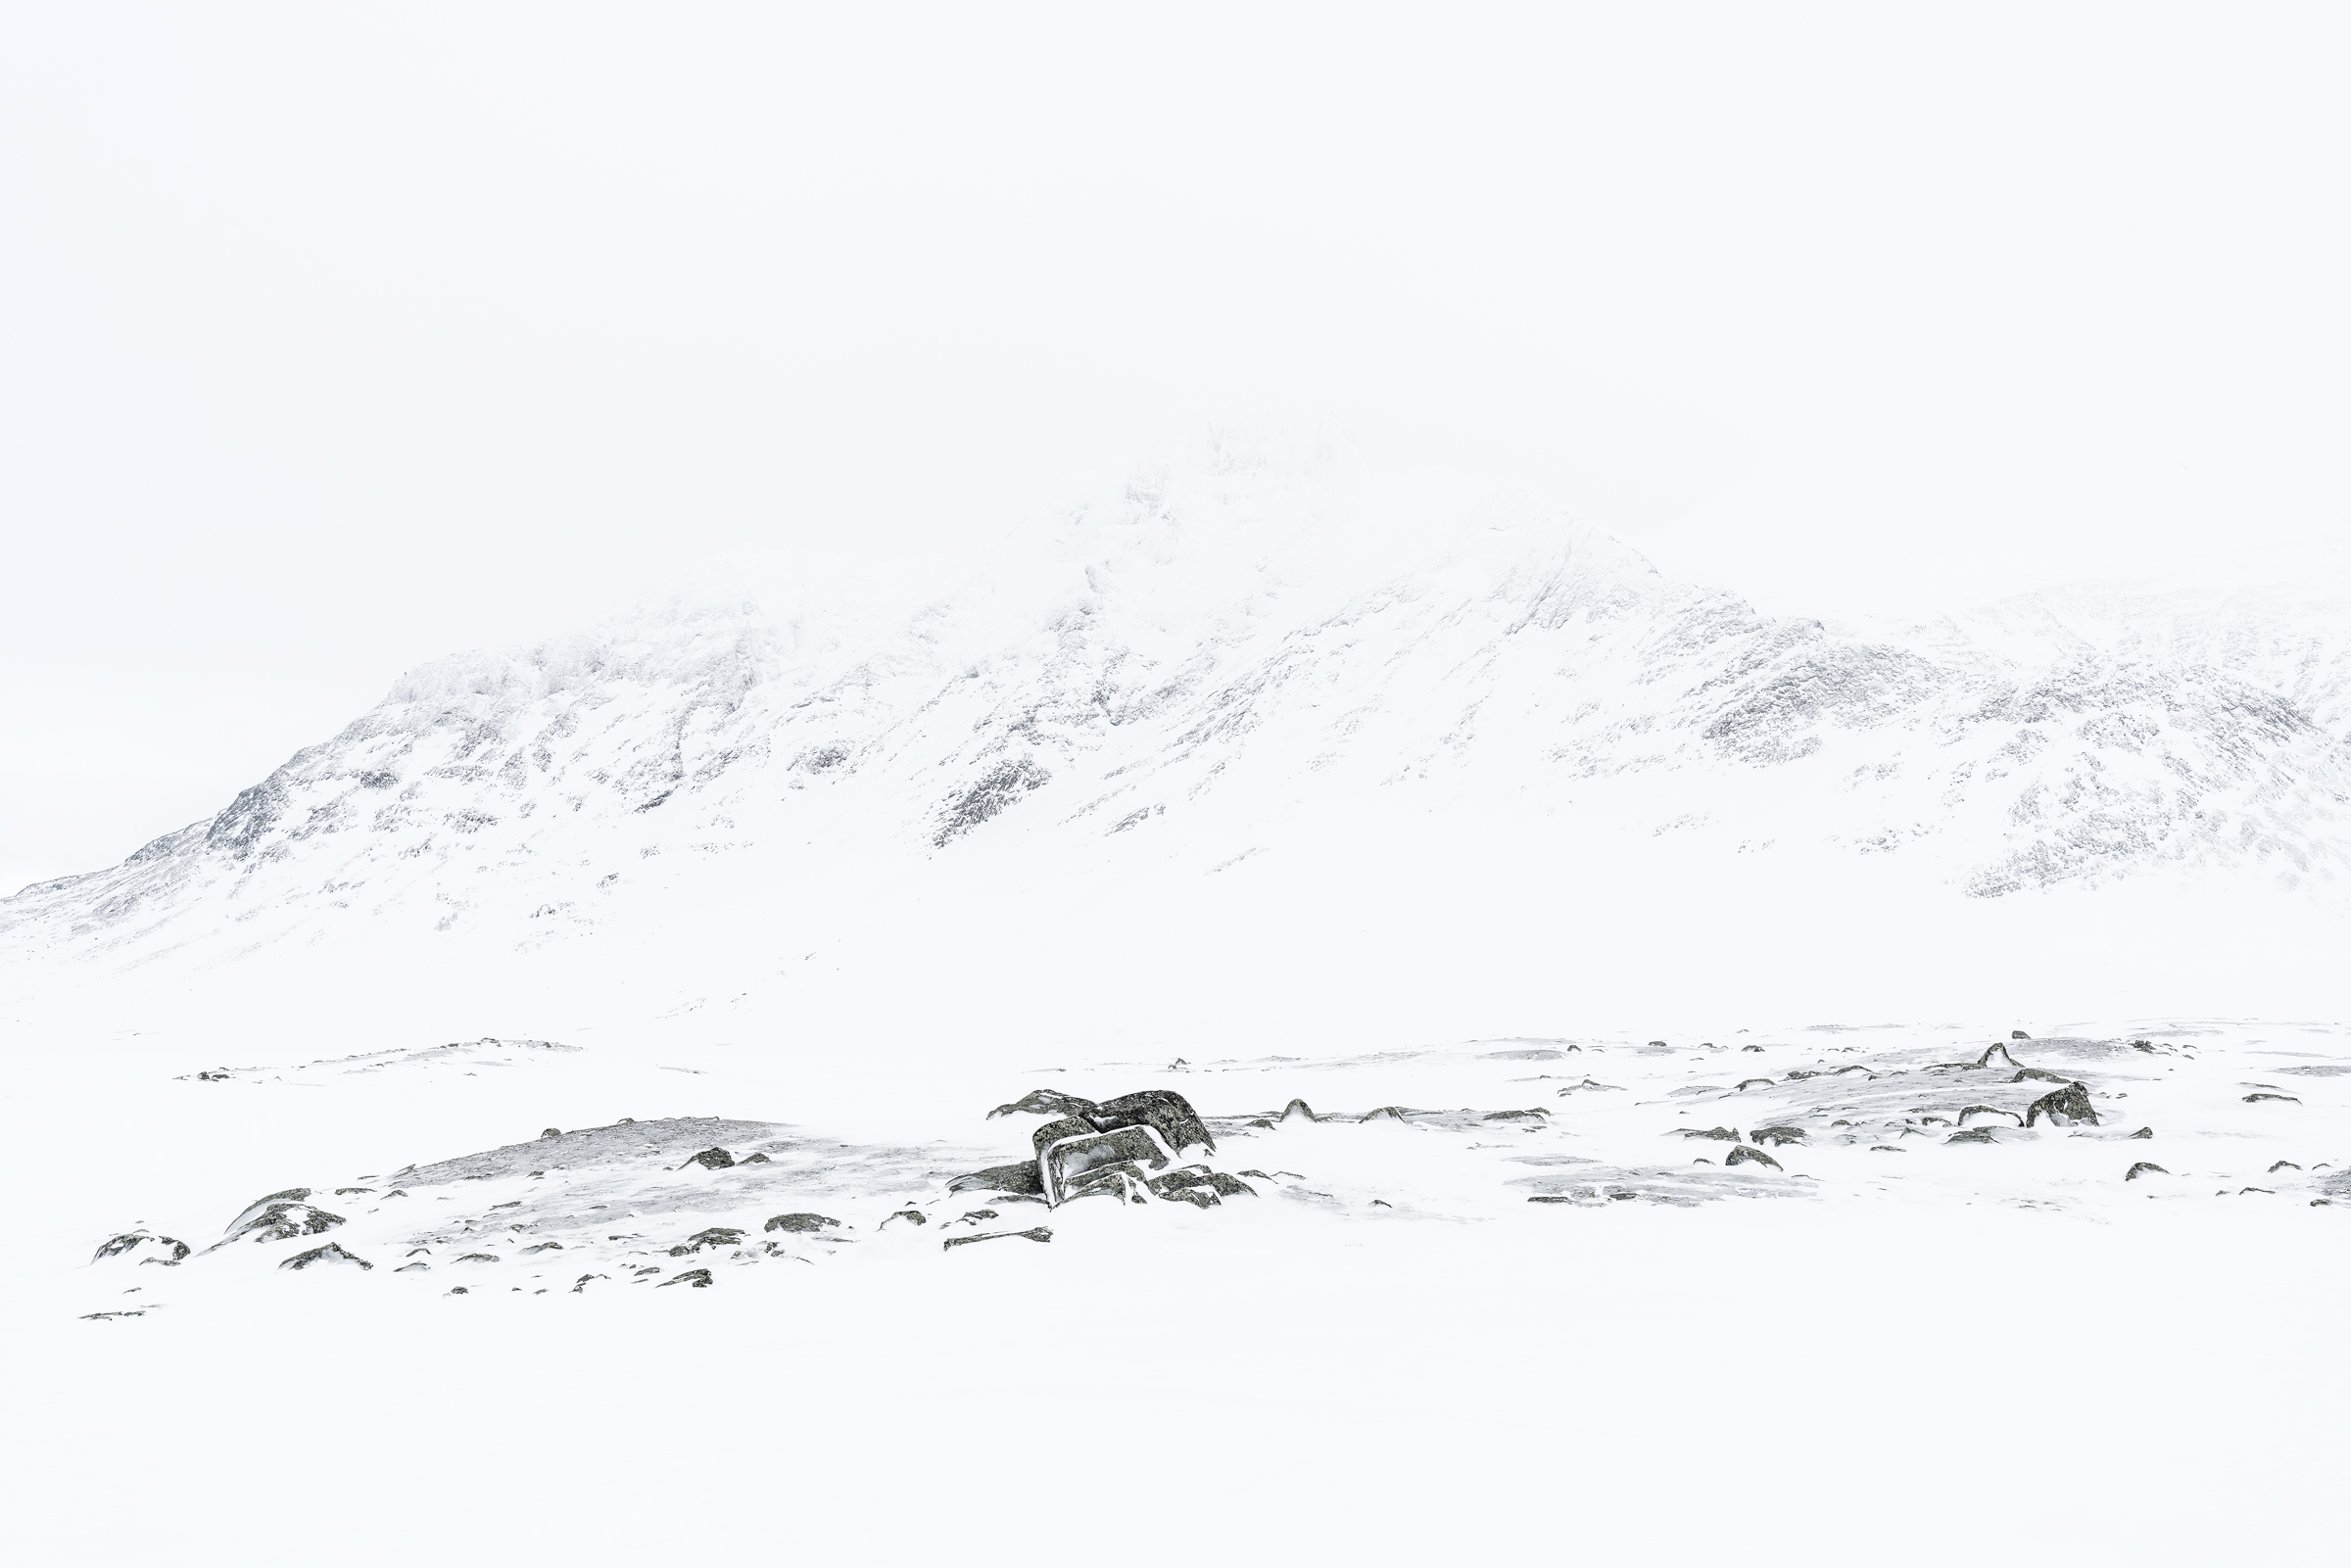 Mount Bierikbakte barely visible through the low clouds. Sarek National Park. March 2015.